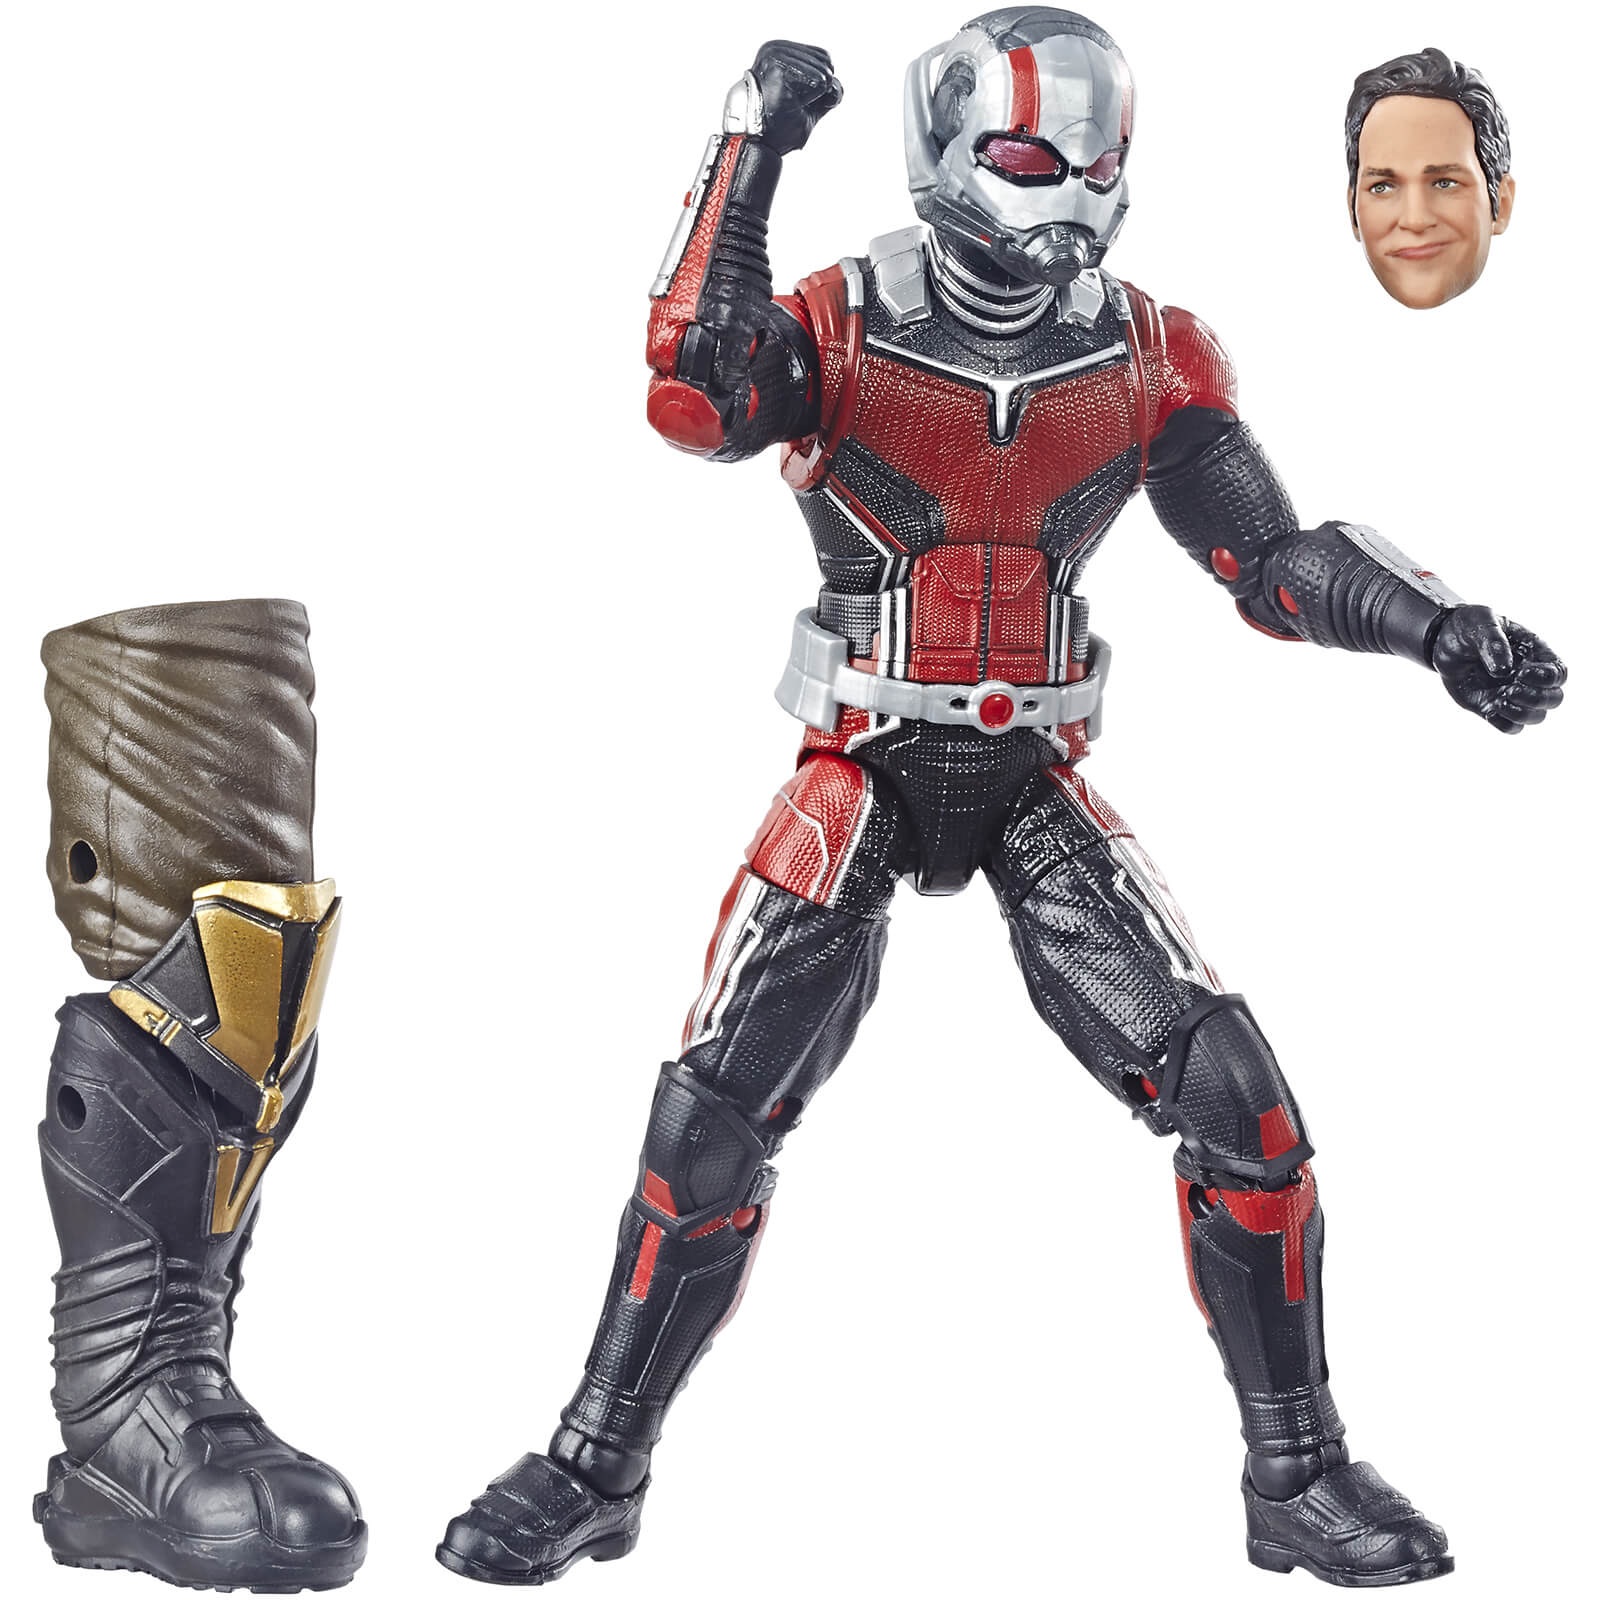 Boneco Homem-Formiga (Ant-Man): Homem-Formiga e a Vespa (Ant-Man and the Wasp) Marvel Legends Series - Hasbro